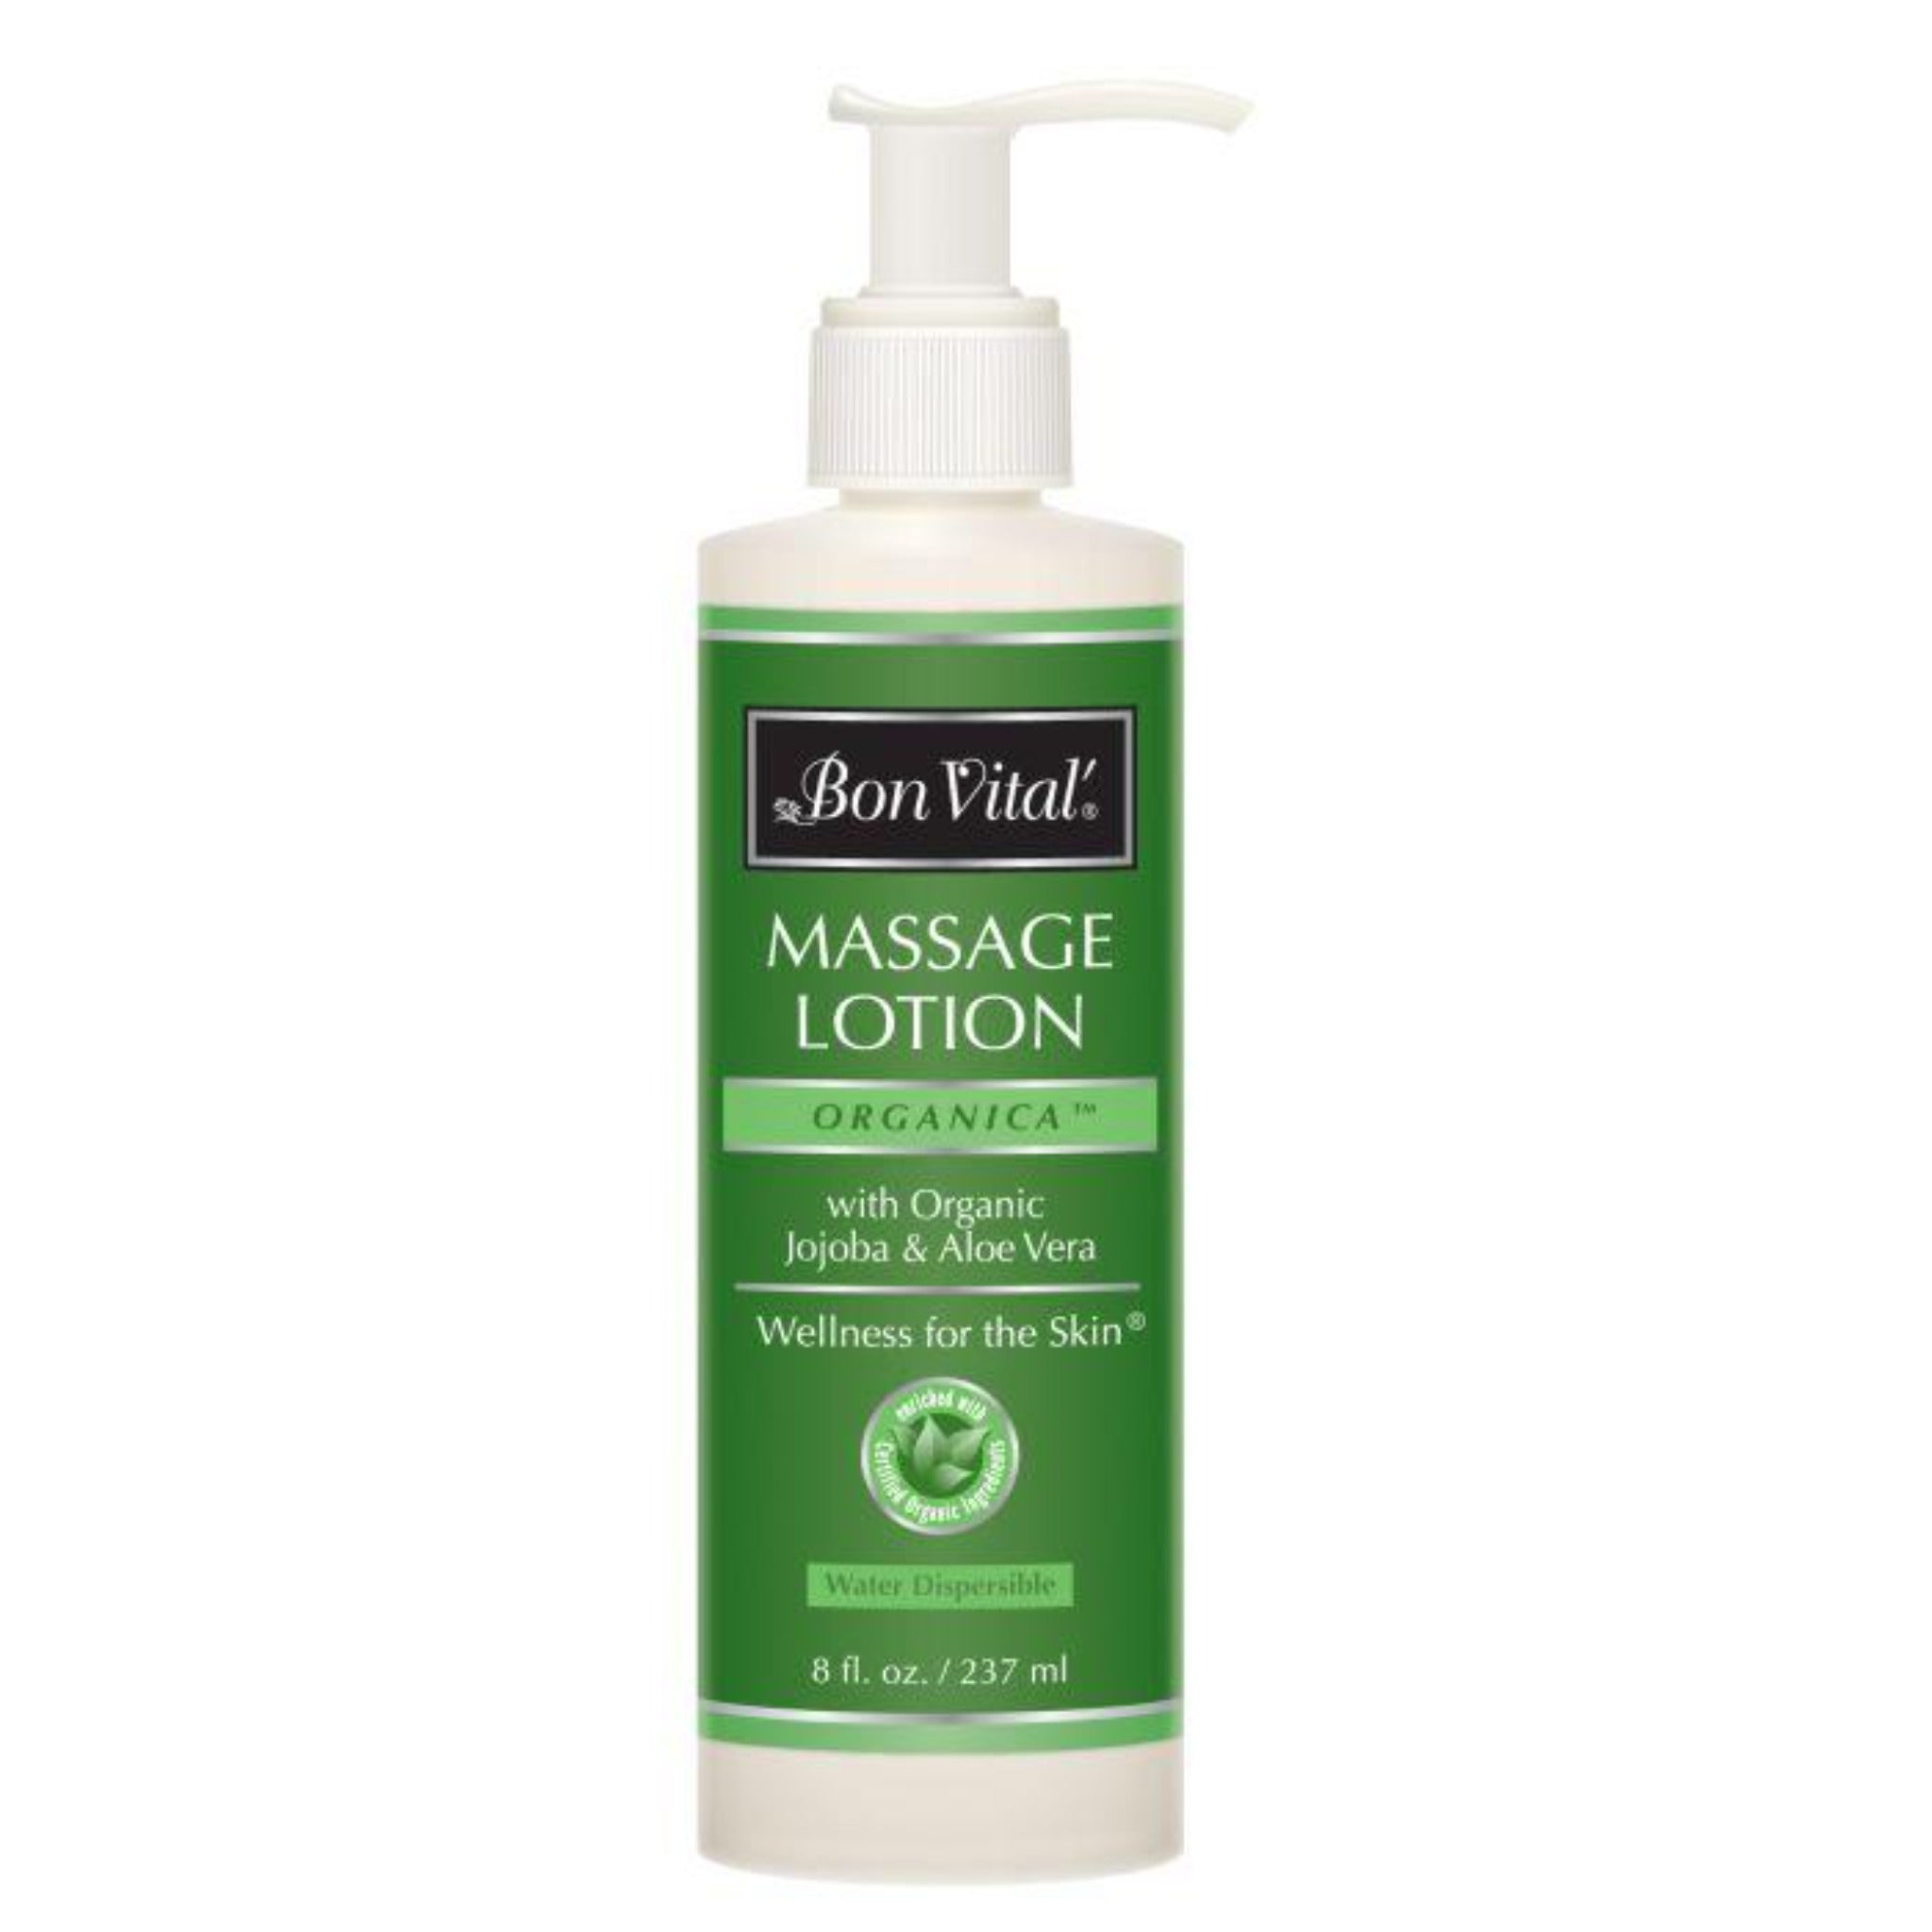 Bon Vital Massage Lotion - Organica - Unscented